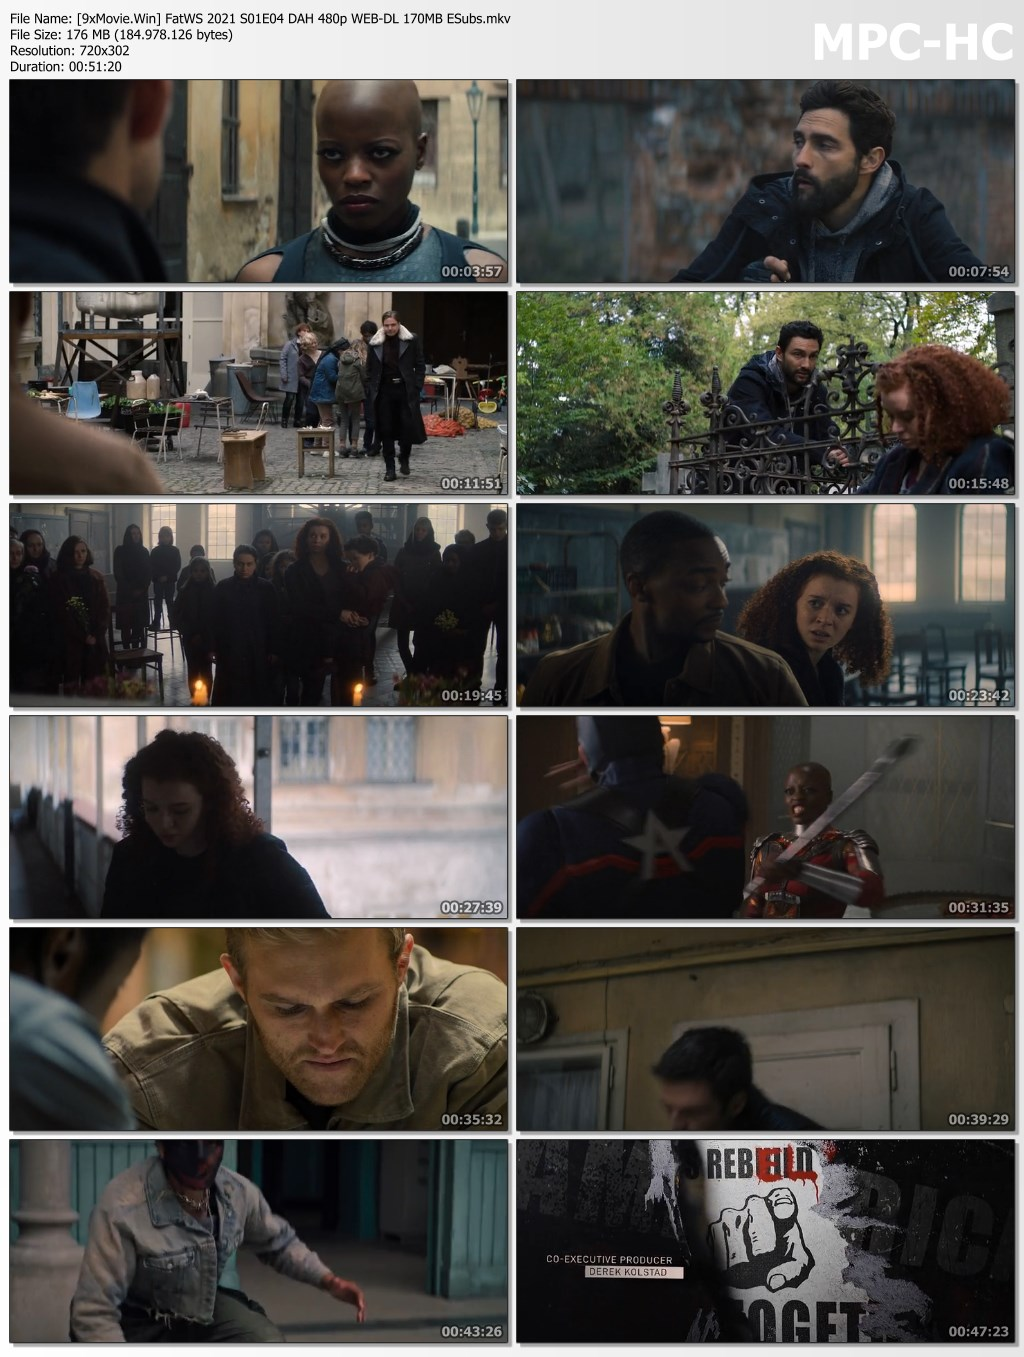 Falcon and the Winter Soldier 2021 S01E04 Dual Audio Hindi 480p WEB-DL x264 170MB ESubs